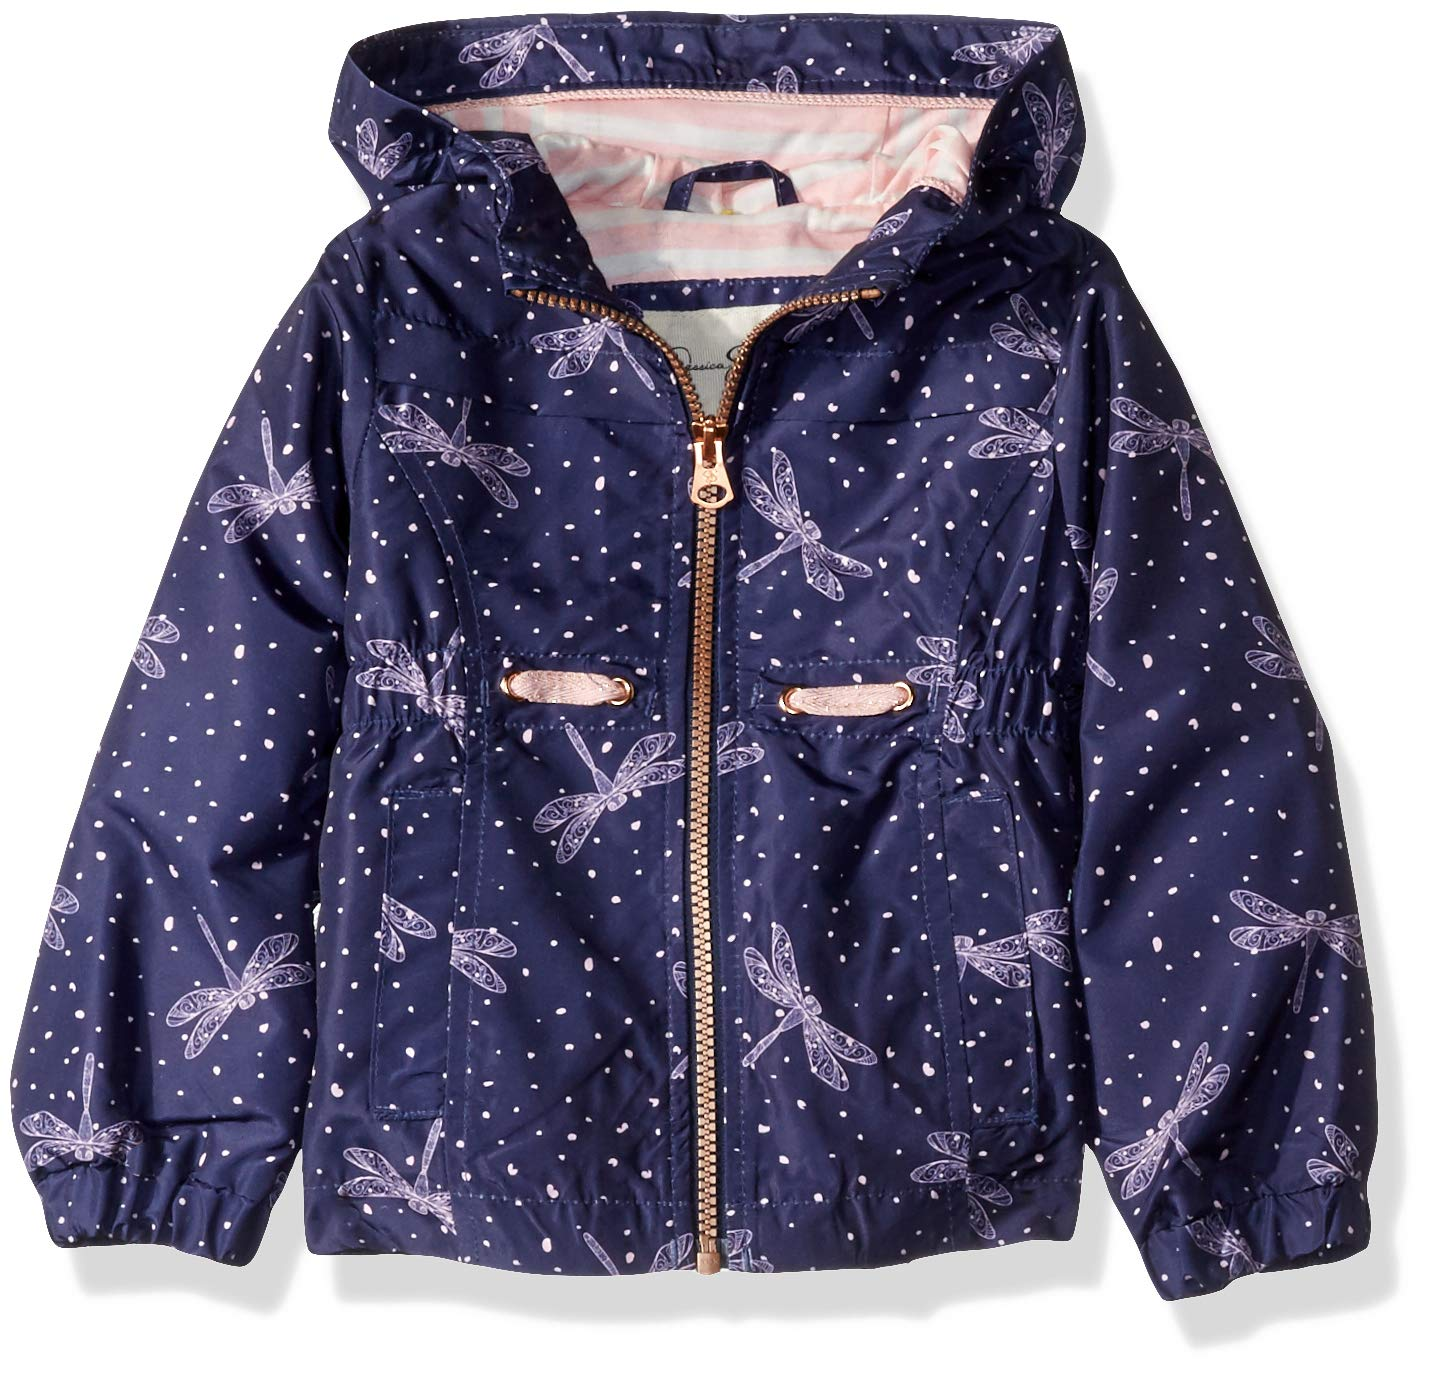 Jessica Simpson Girls' Toddler Lightweight Anorak Jacket with Jersey Lining, New Navy Dragonfly 2T